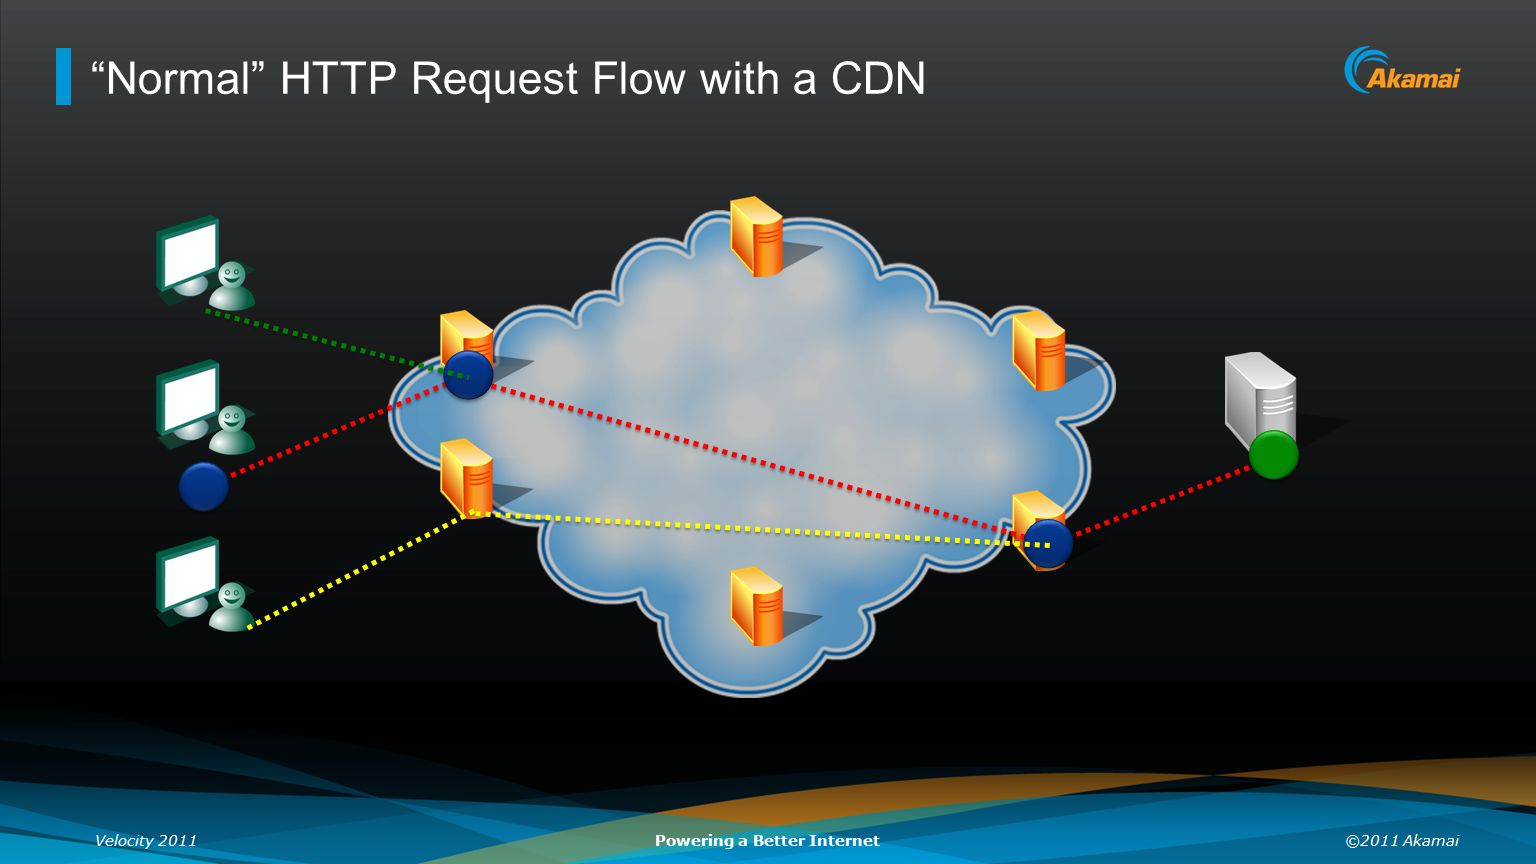 Normal HTTP Request Flow with a CDN